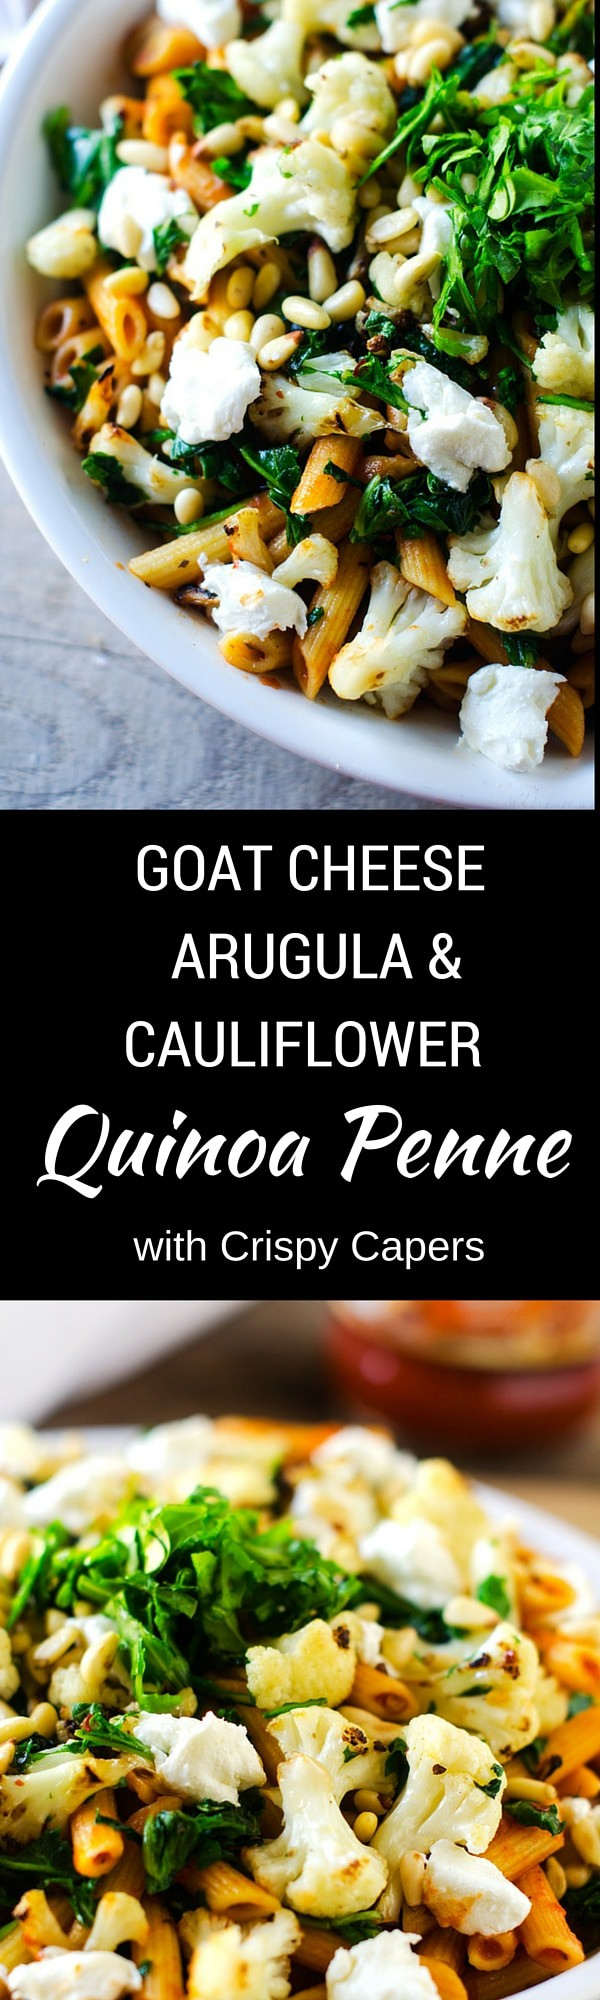 Goat Cheese, Arugula & Cauliflower Quinoa Penne with Crispy Capers